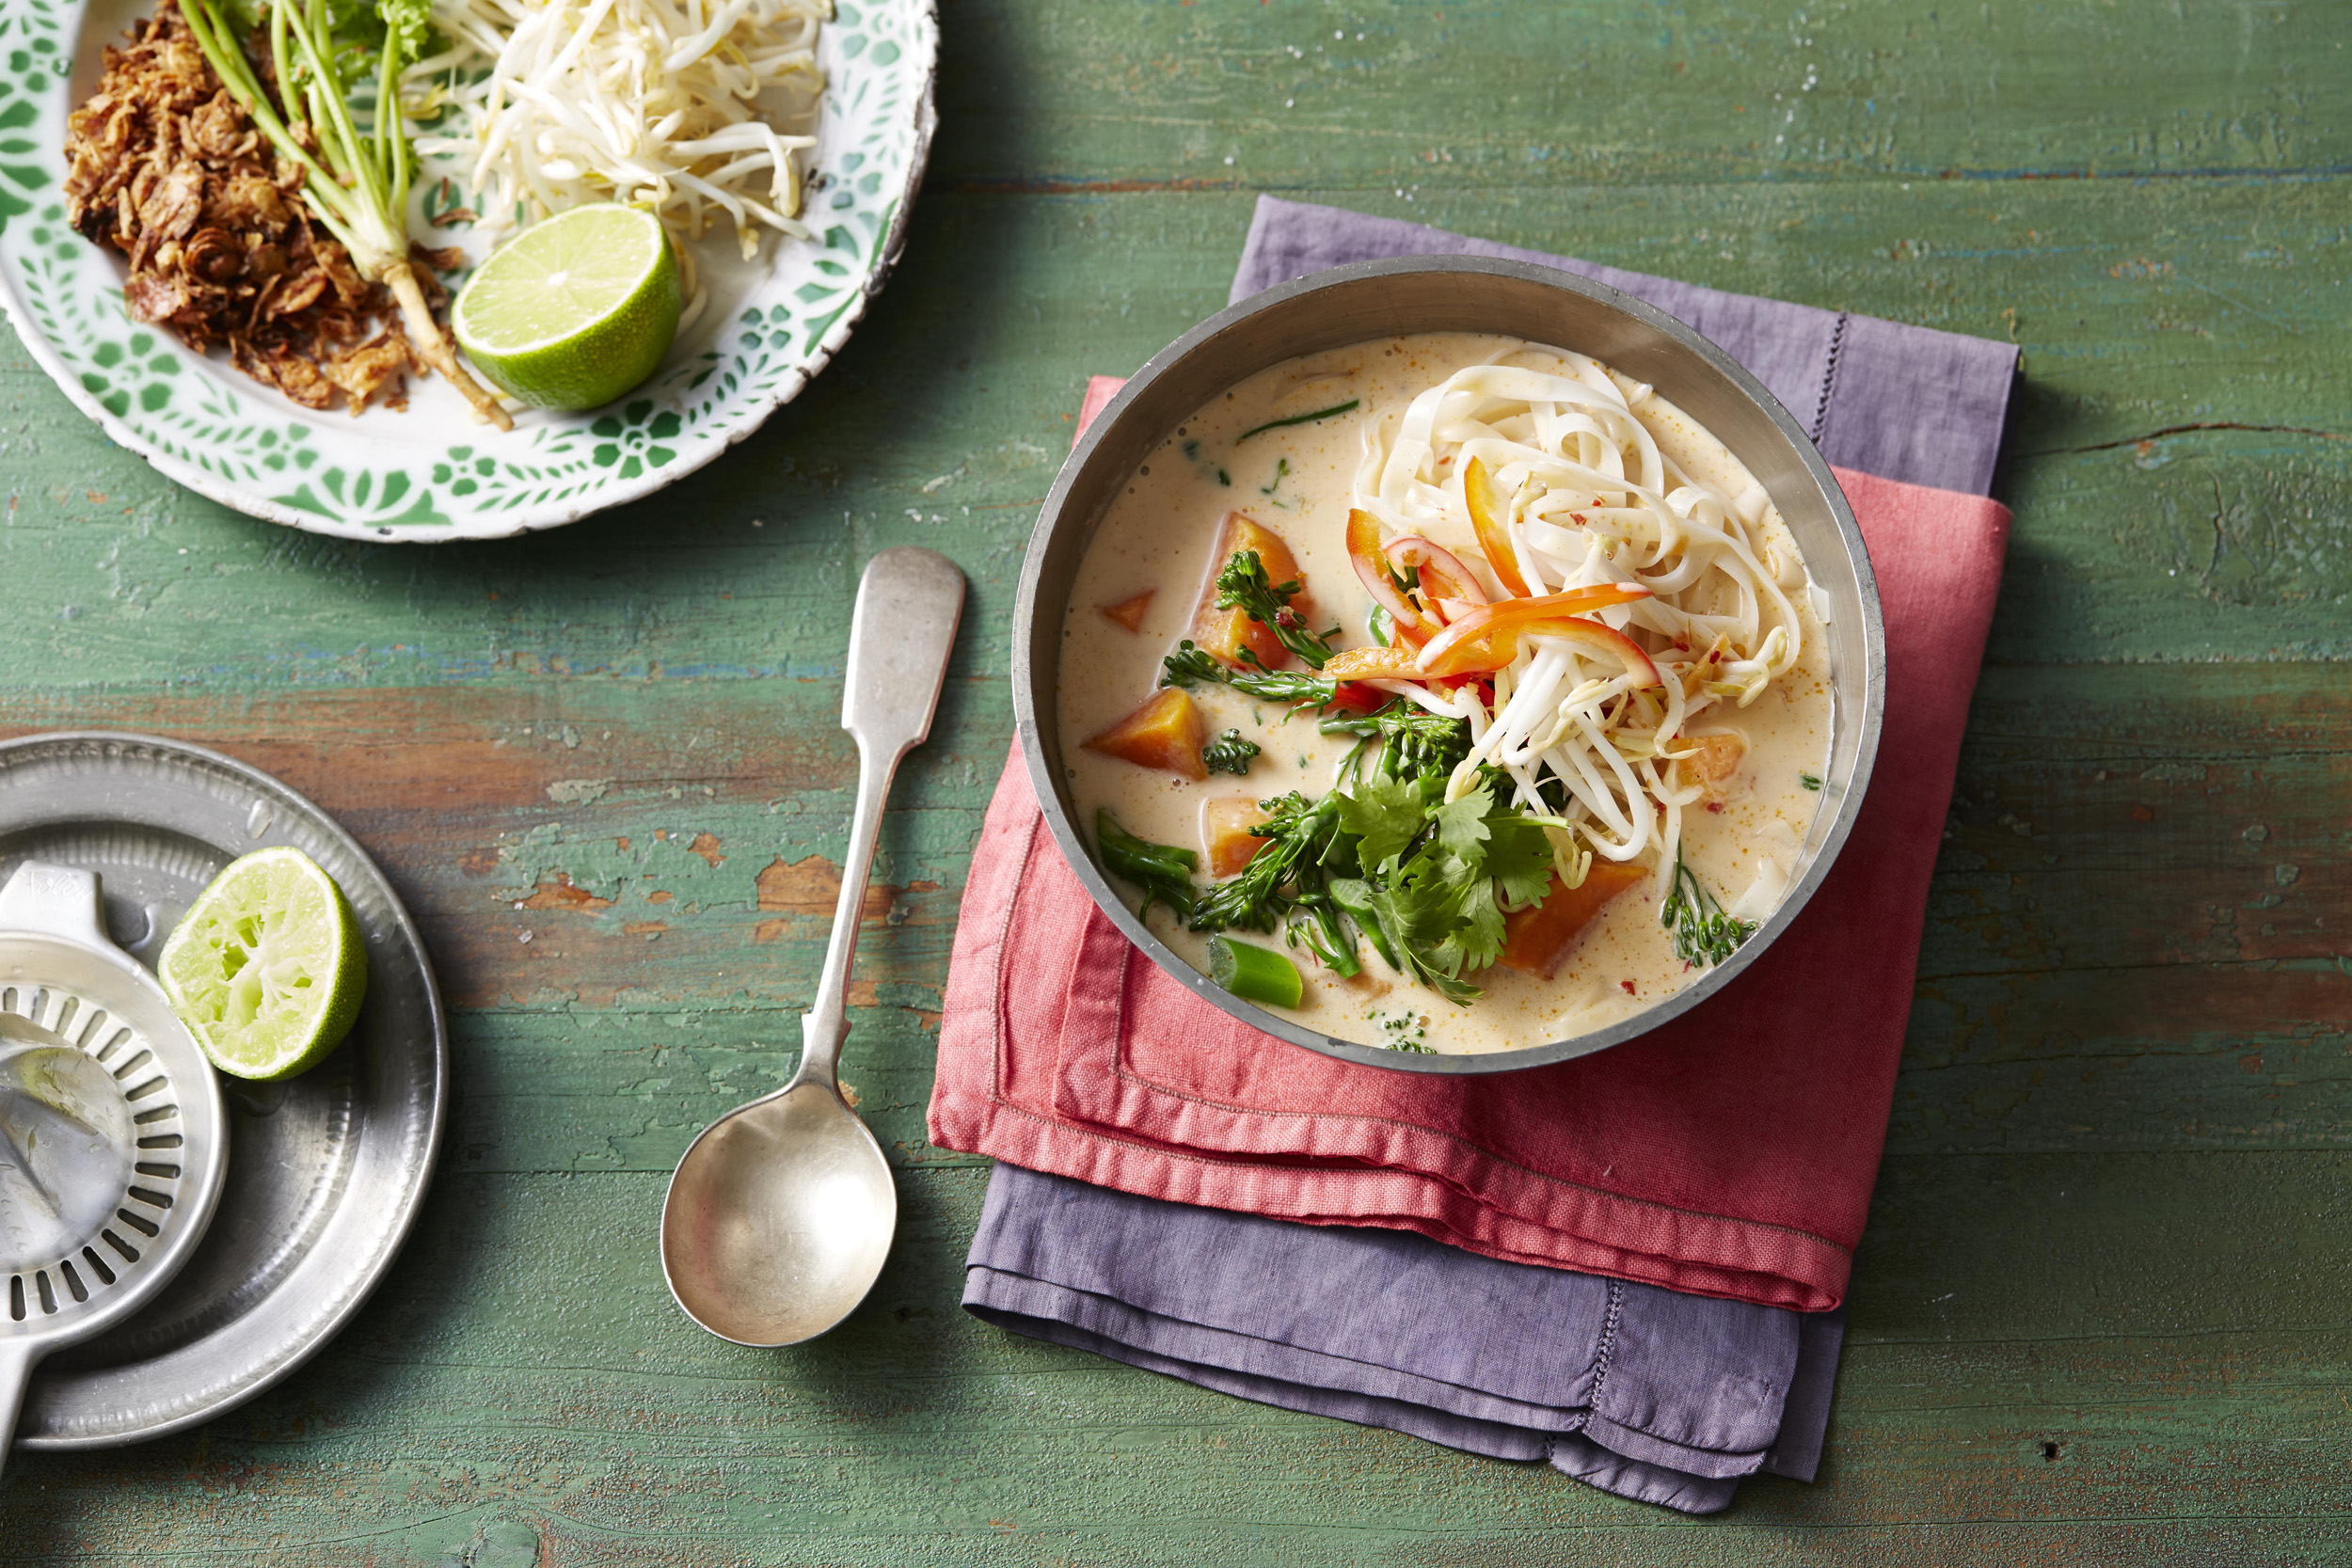 Recipe_LR_Broccolini_Easy Sweet Potato Laksa1_Janelle Bloom_2015